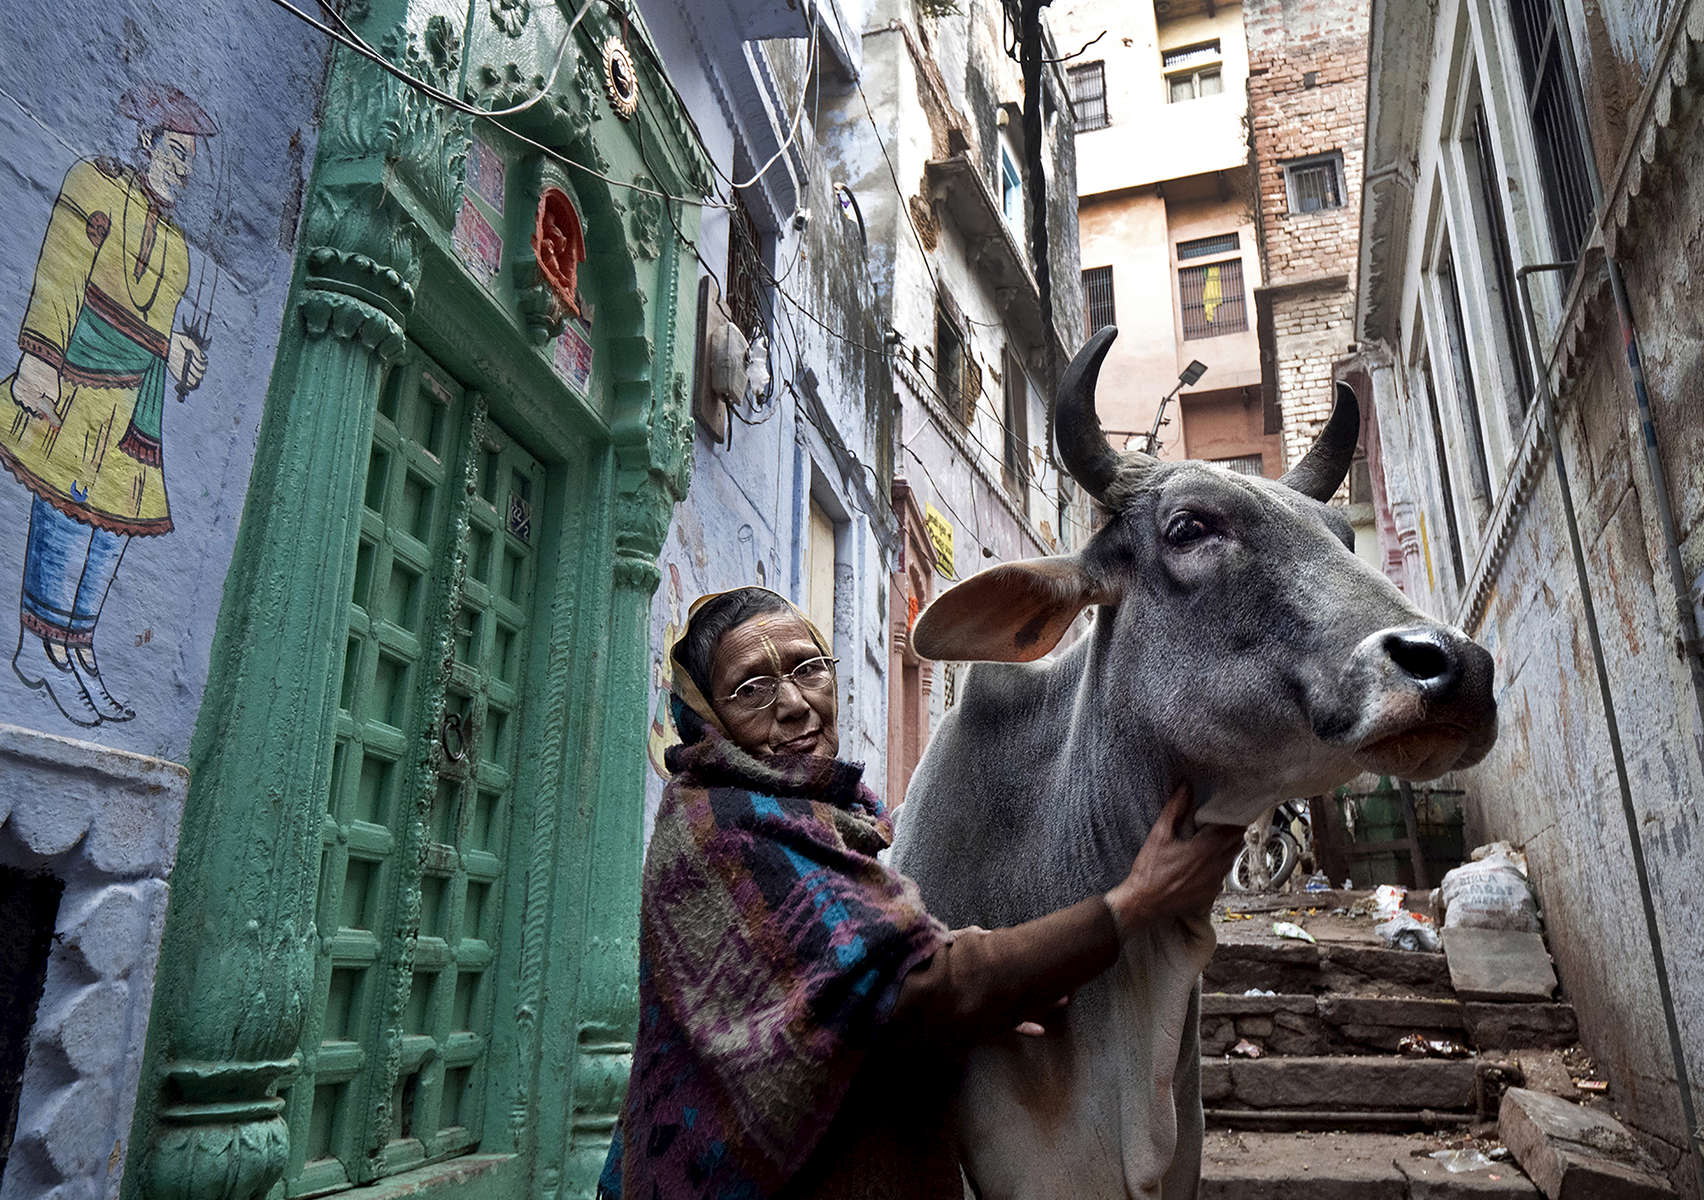 Meena Devi, 78, a widow, pets a cow outside of Rak Kuti ashram in Varanasi, India on January 07, 2019. Meena is originally from Nepal, and has lived in the ashram for the past 25 years. Before that, she lived in the same building as Sita Devi, 52, and her mother-in-law, Goma Devi, 96, who now also occupy this ashram. Meena is a child widow. {quote}Maybe I was cursed and I would have been forbidden to attend any functions because my husband died at a young age,{quote} she says. So with the help of relatives she moved here to live among other widows. She didn't want to marry again after her husband's death.